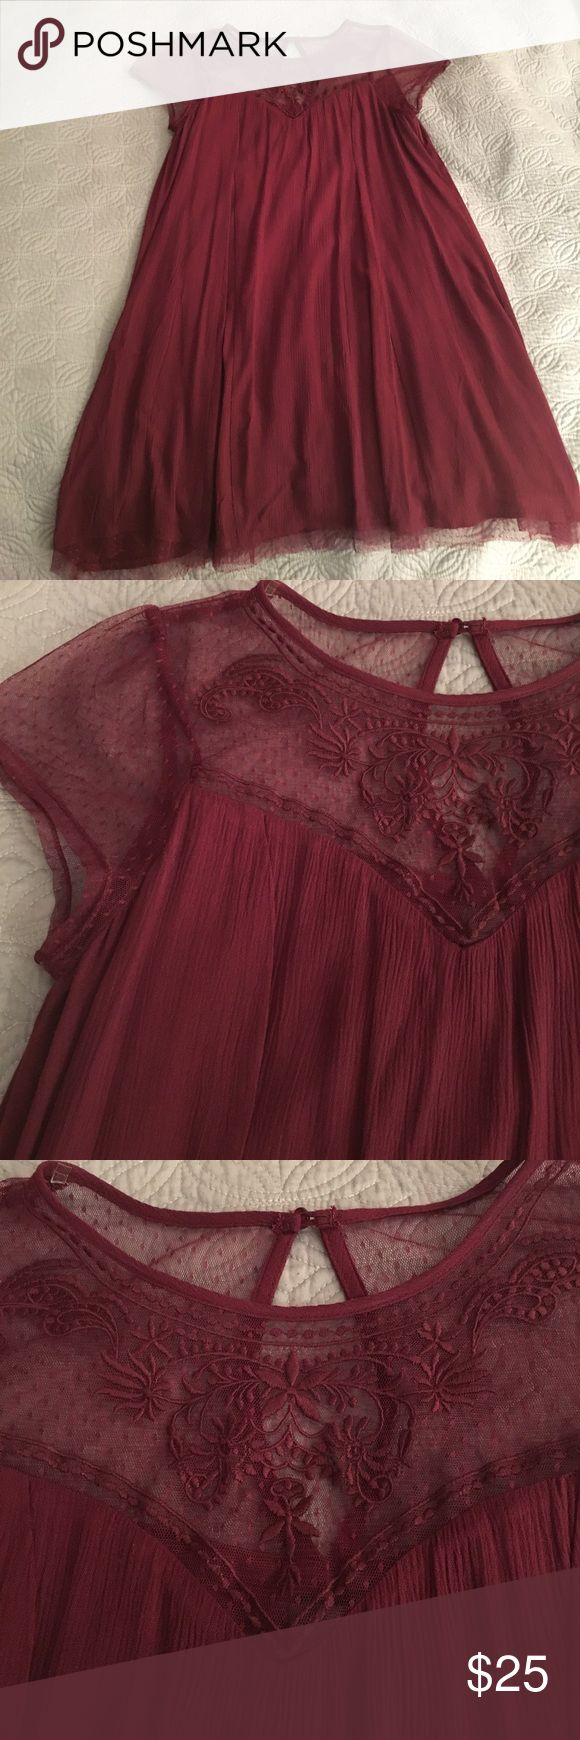 Lace Yoke Trapeze Swing Dress in Deep Burgundy Red Deep burgundy Dress with flattering swing princess seems and lace yoke. Keyhole back in pullover style (no sip). Bottom is strummed with the same adorable Swiss dot lace. Purchased to wear to a wedding, and work exactly once. It's super cute. Trixxi Dresses